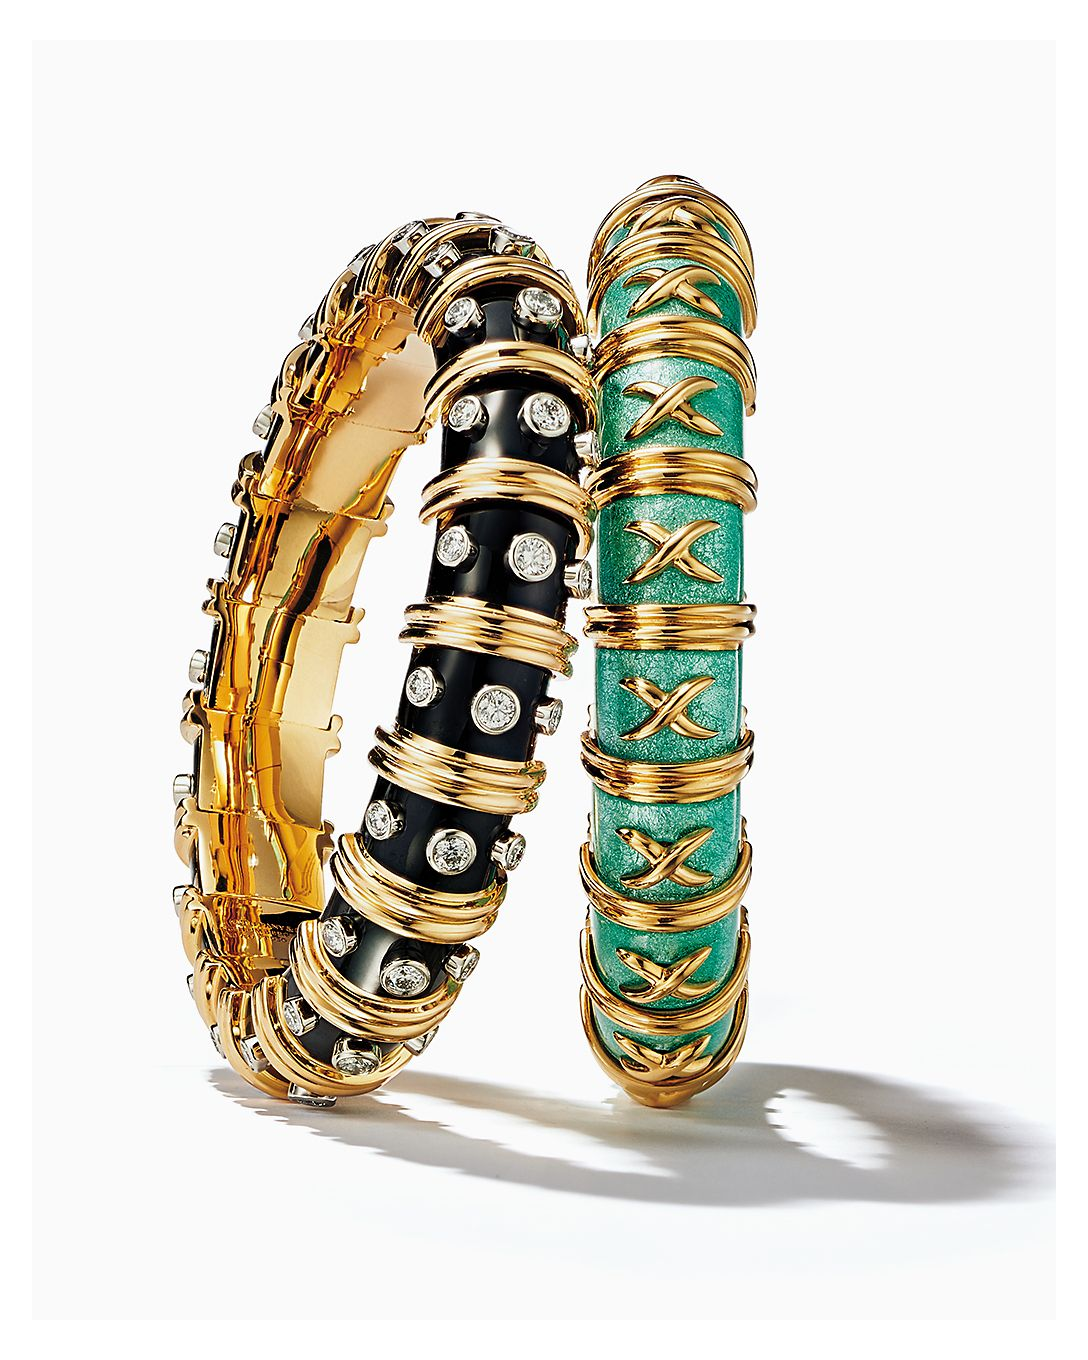 Shop the Tiffany & Co. Schlumberger collection